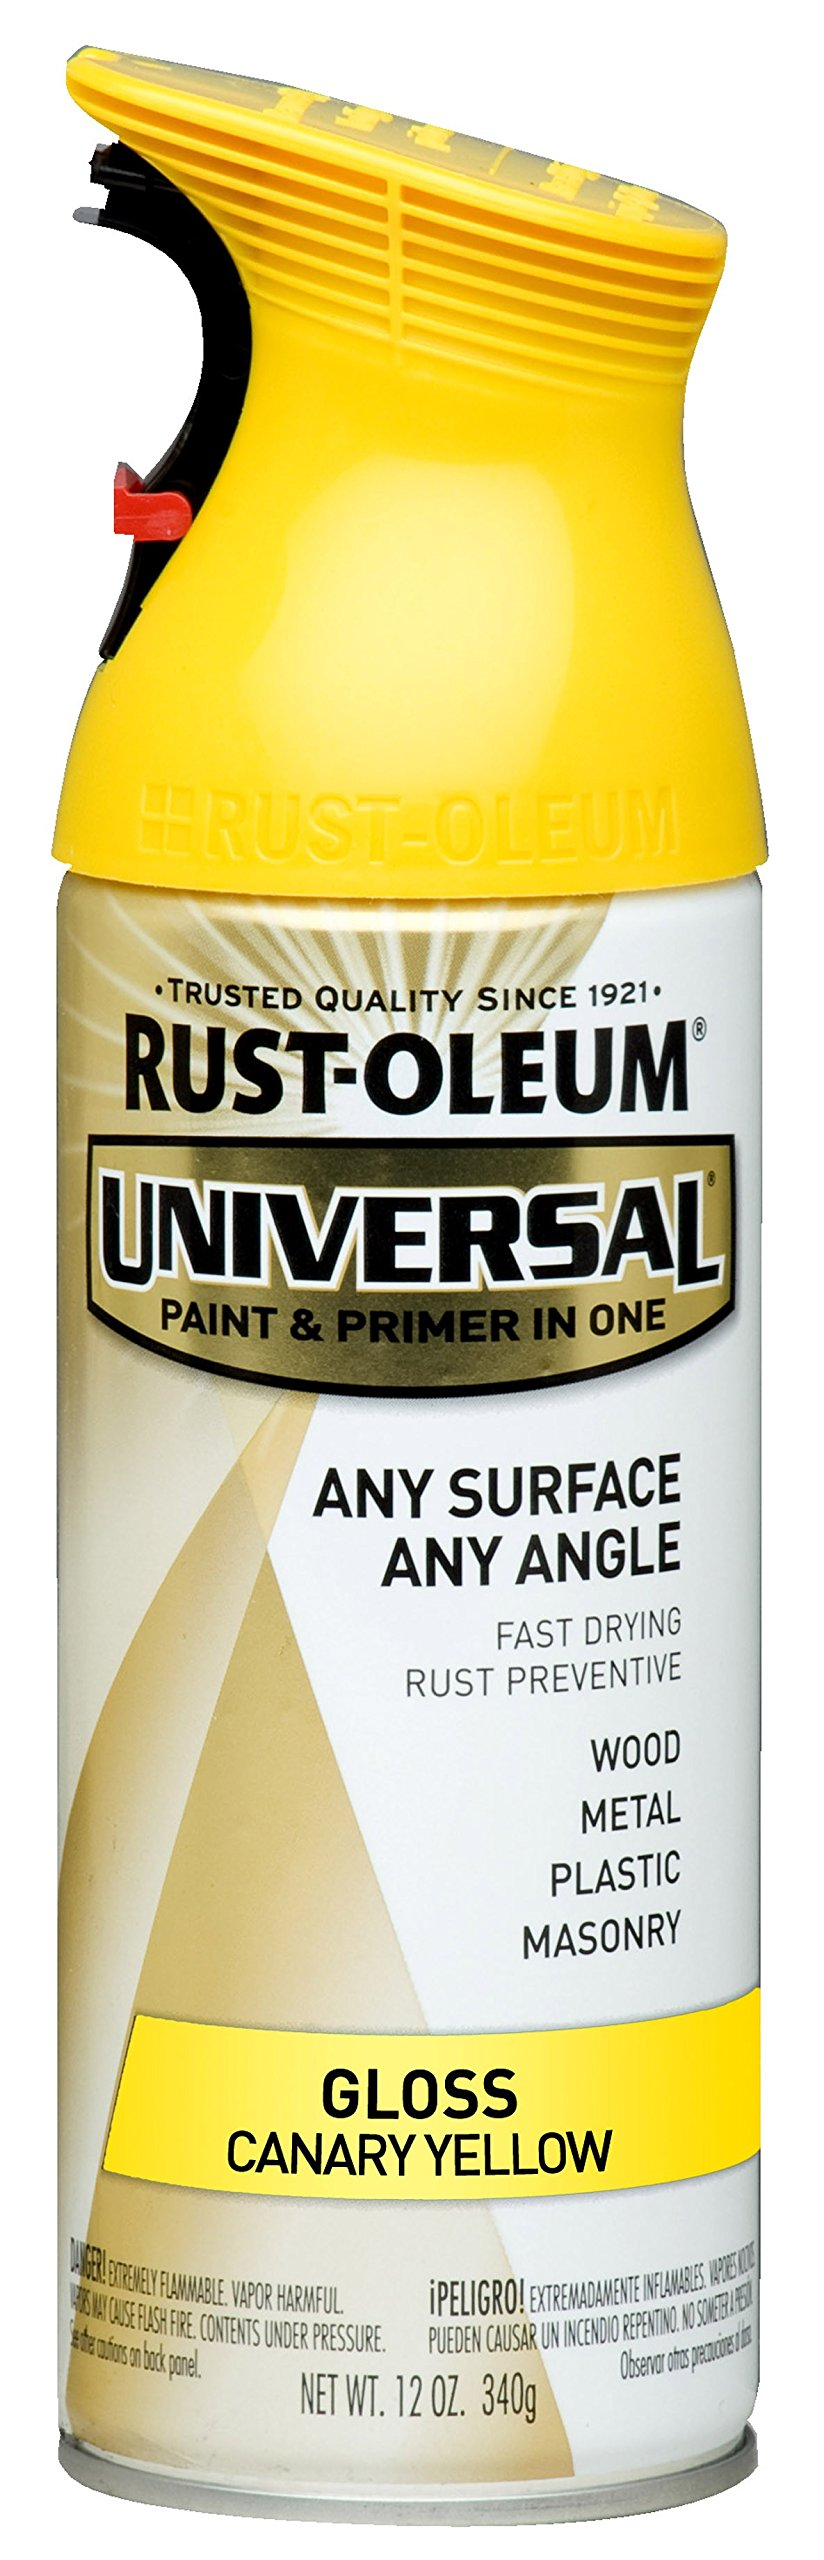 Rust-Oleum 245213 Universal All Surface Spray Paint, 12 oz, Gloss Canary Yellow